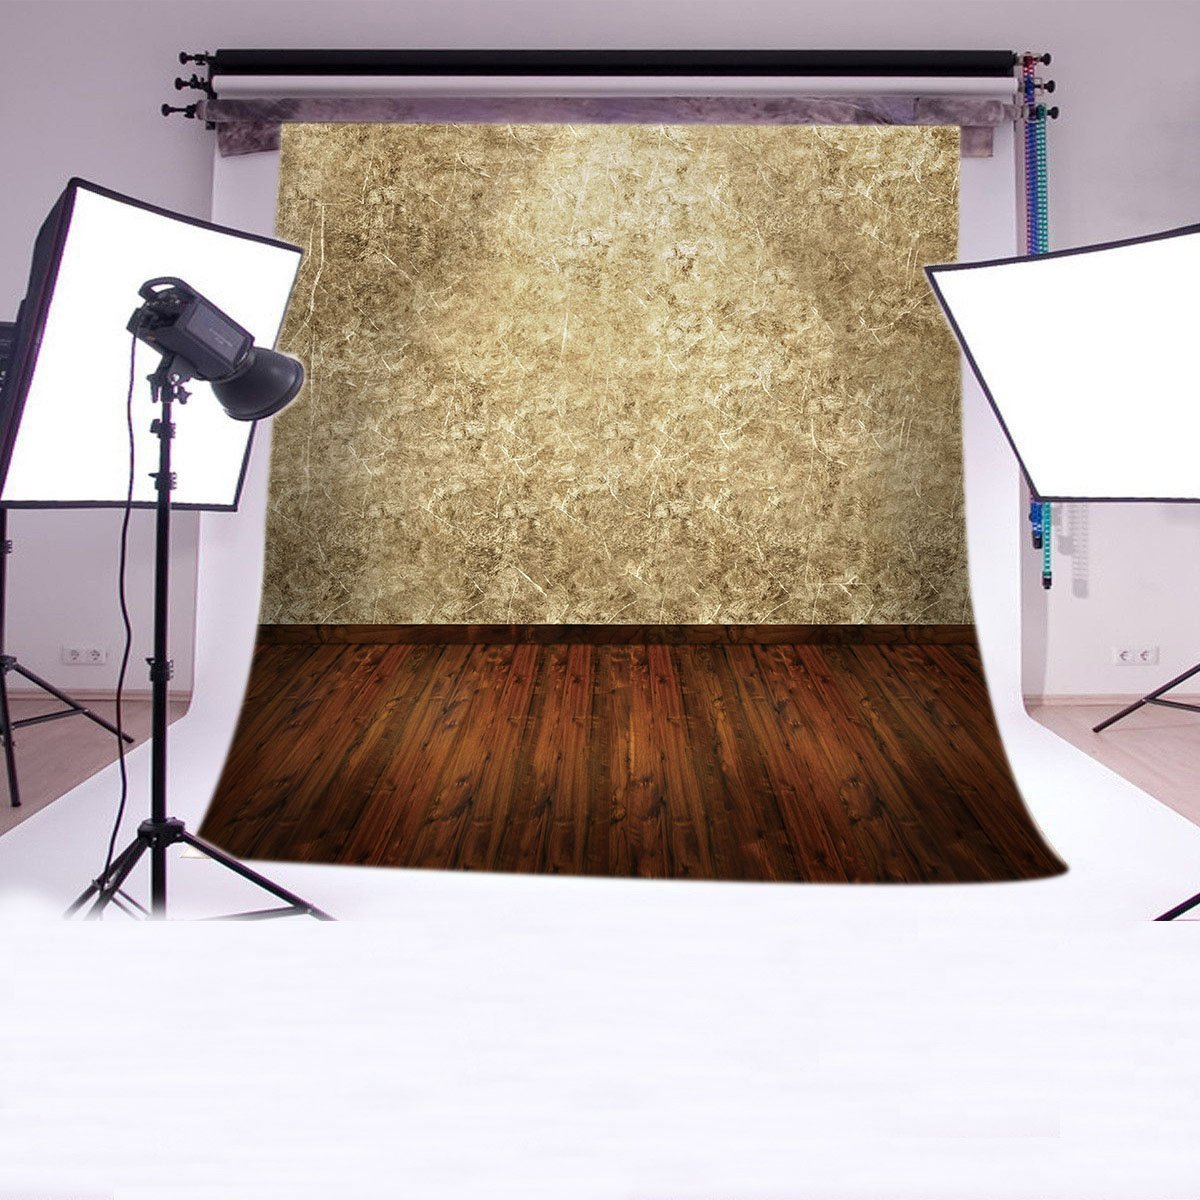 Stereoscopic White Wall&Floor 8x8ft Pictorial cloth Photography Backdrop CUSTOMIZED QD13